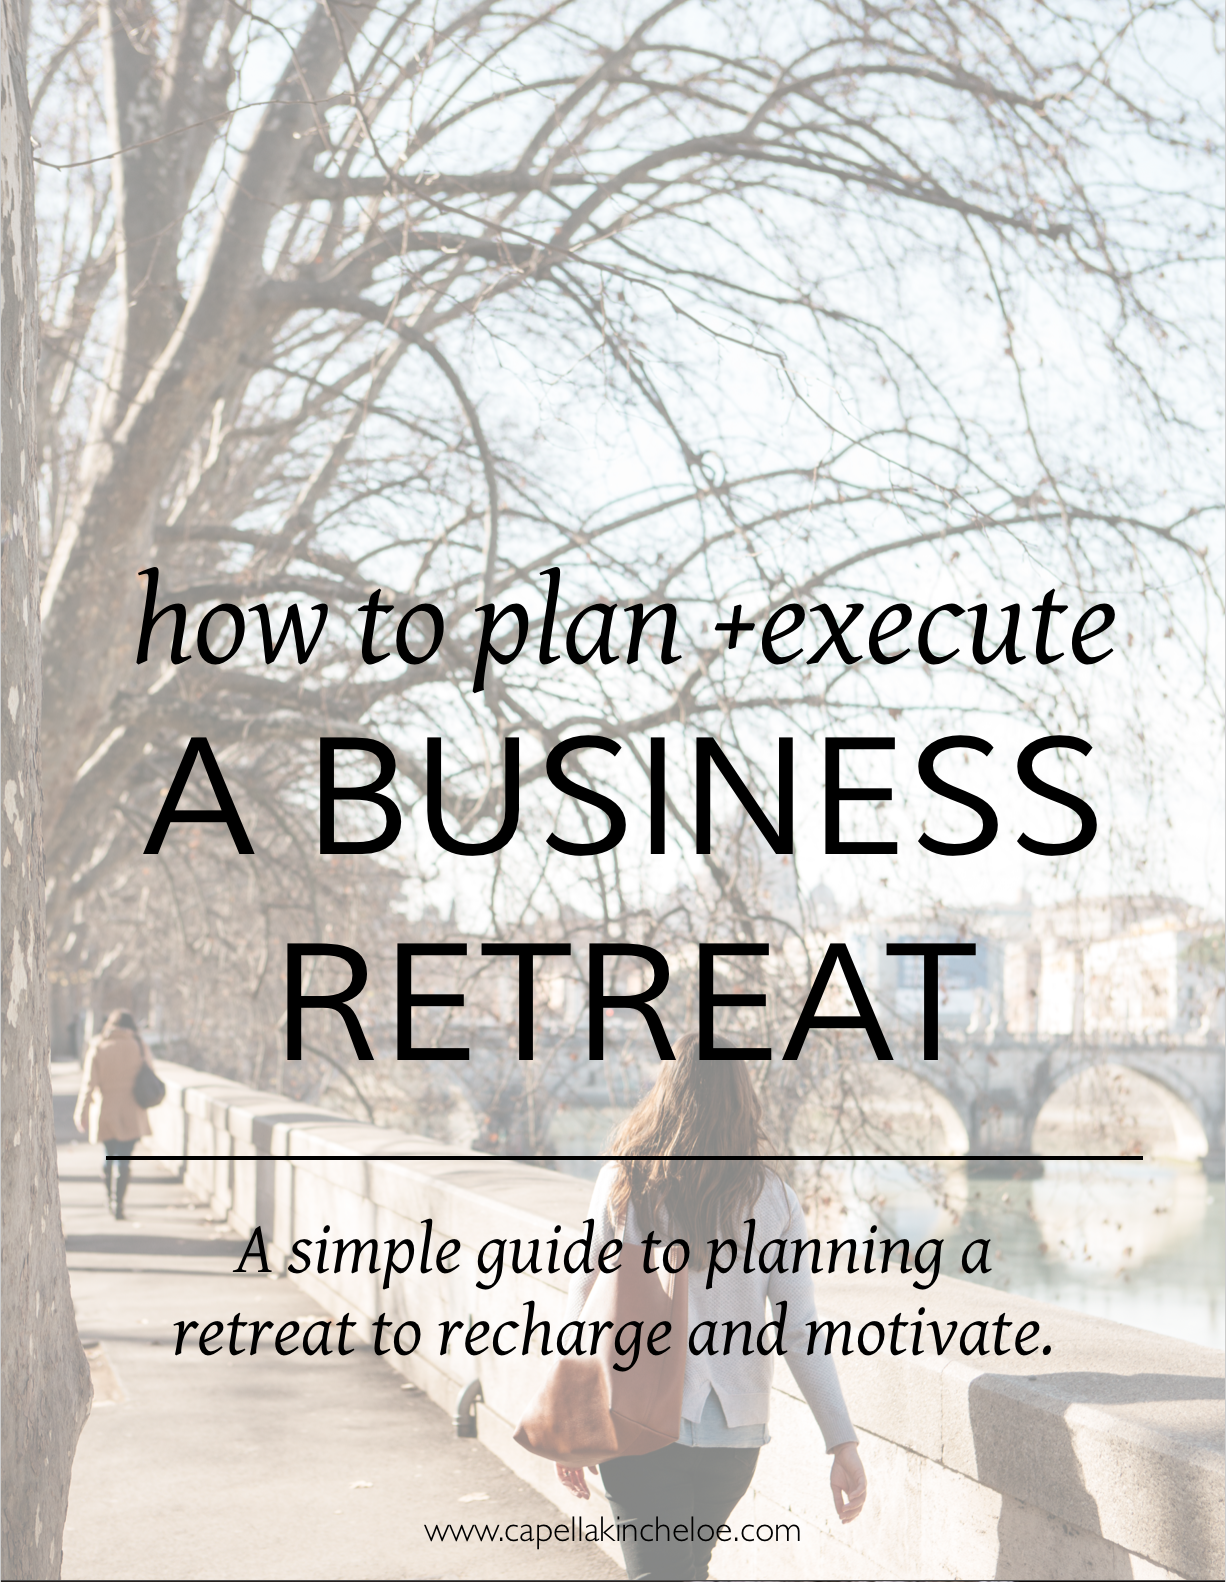 Every small business owner needs time away from their business to reevaluate, recharge, and gain perspective on their business. Sometimes we get so stuck in the every day of our business that we don't take time to plan the big picture. Surprisingly one of the best things you can do when running an interior design business is to get away from it! Learn how!